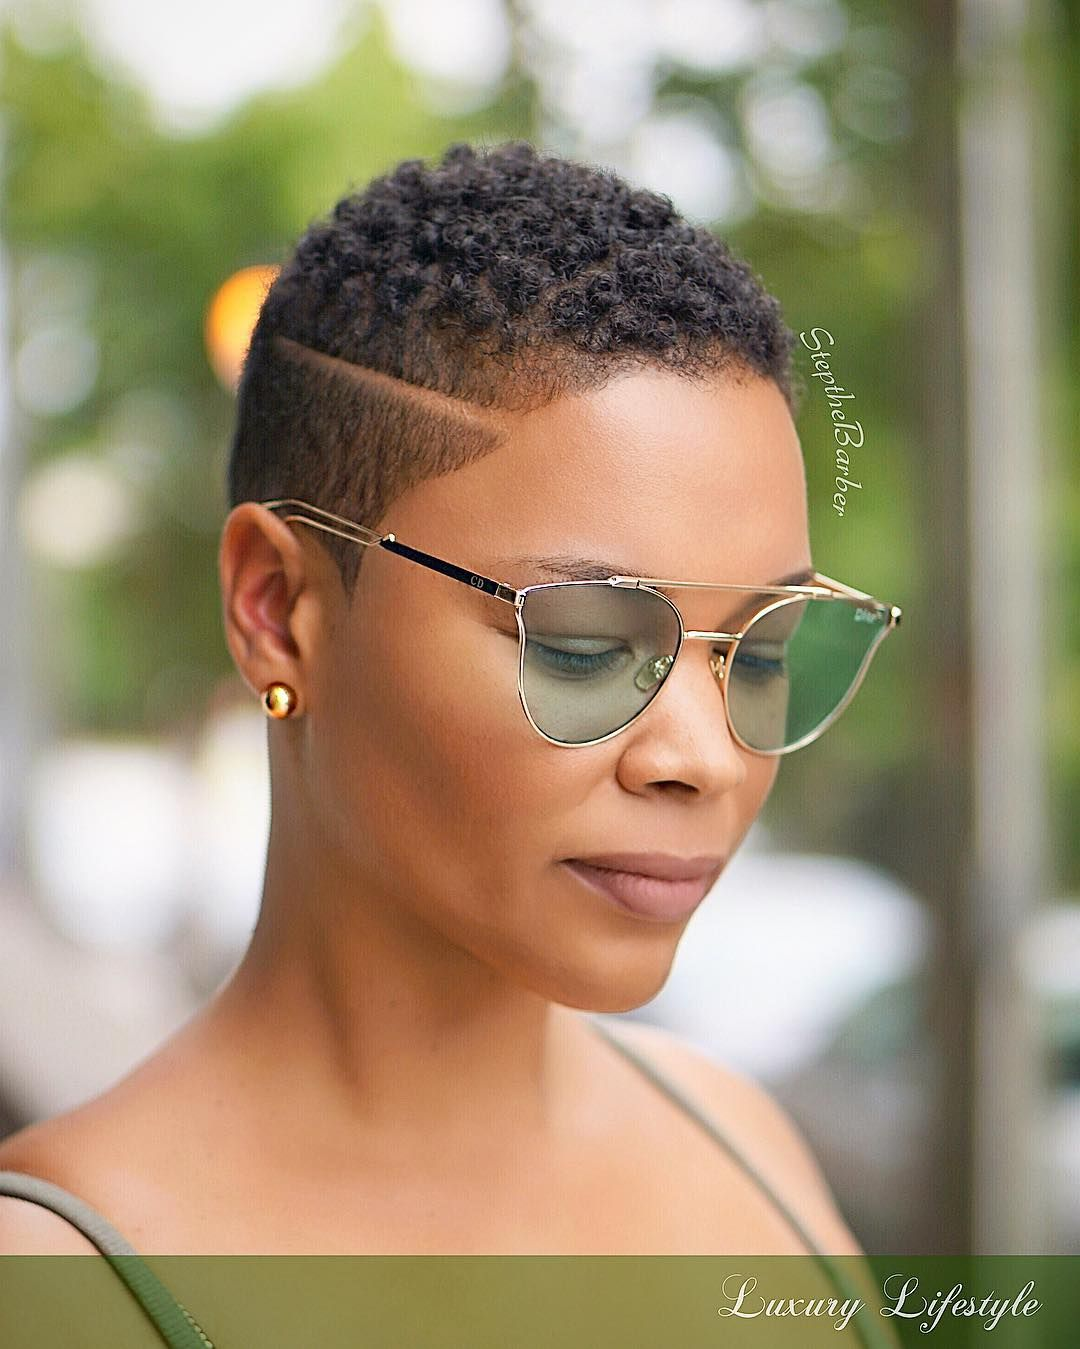 Tapered haircut with a disconnected side part. TWA, black ...